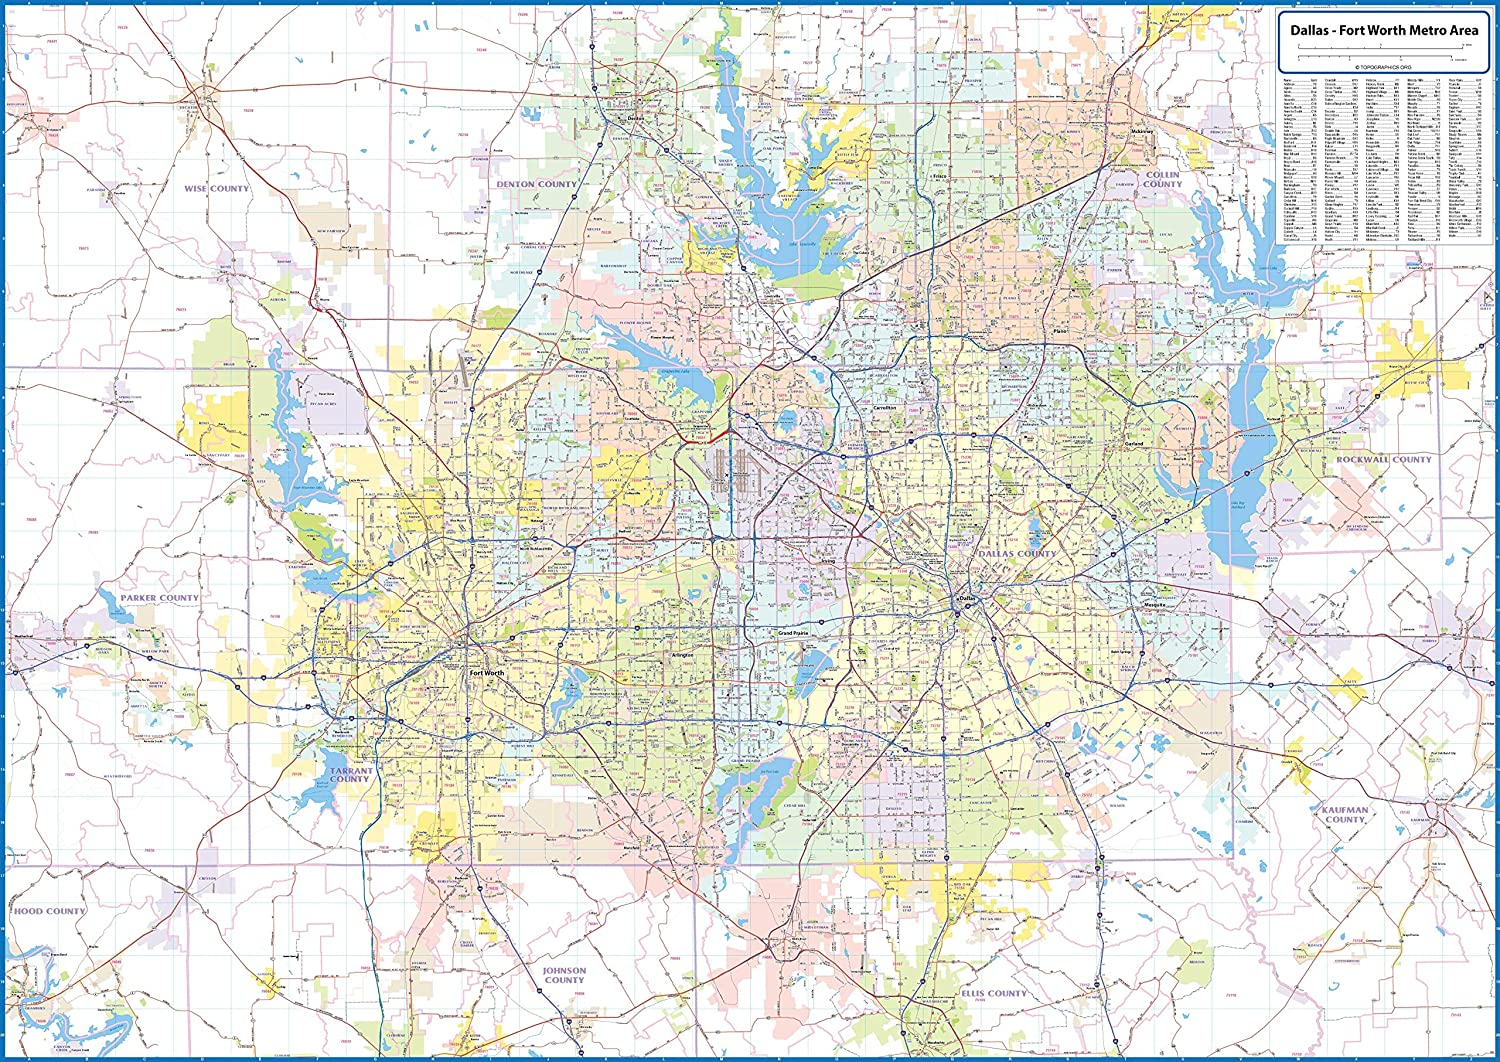 Dallas - Fort Worth Metro Area Laminated Wall Map on abilene area map, washington d.c. area map, dallas city area map, fort worth zip code map, fort myers area map, fort worth tx map, fort lauderdale area map, ft.worth map, fort worth stockyards map, dfw map, dallas tx area map, garland area map, fort worth city map, dallas at&t stadium area map, fort worth zoo map, downtown fort worth map, dallas area map including suburbs, dallas love field area map, harrisburg area map, dallas denton map,